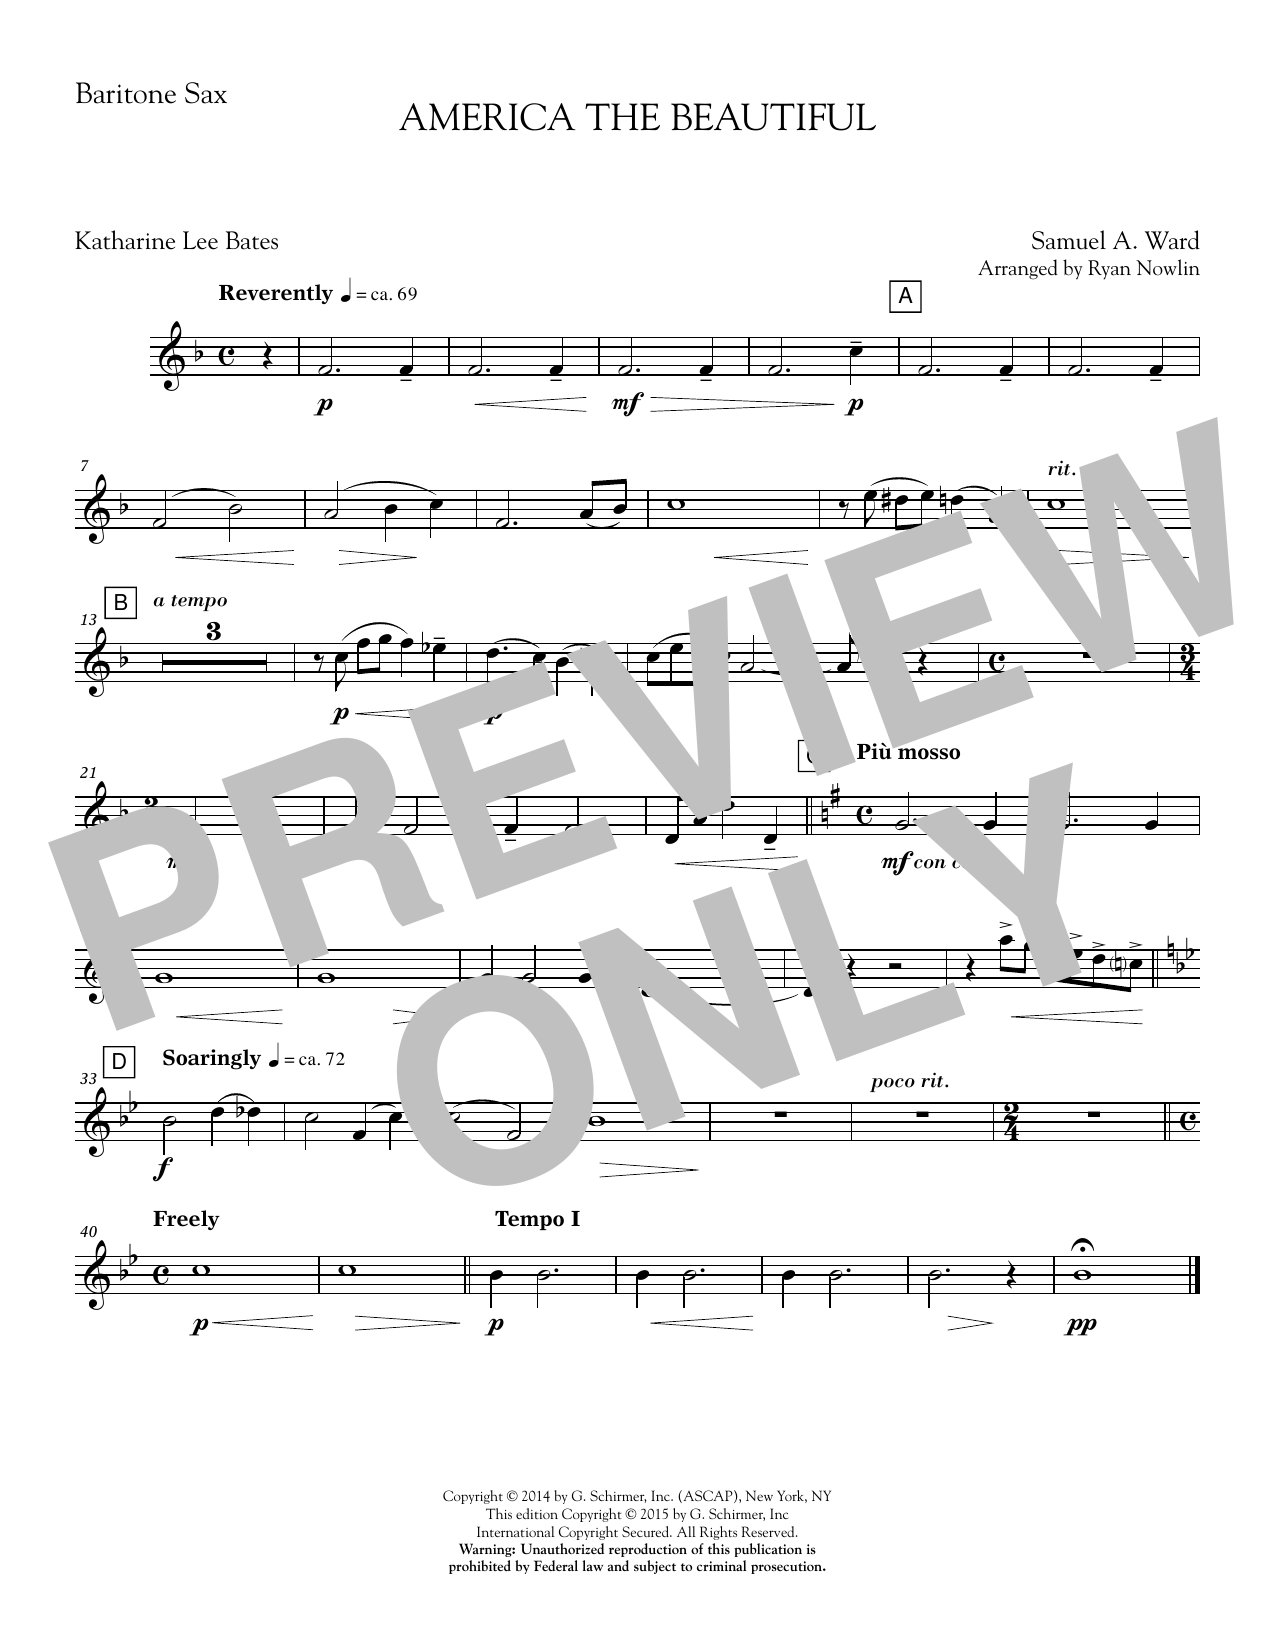 America, the Beautiful - Baritone Sax Sheet Music